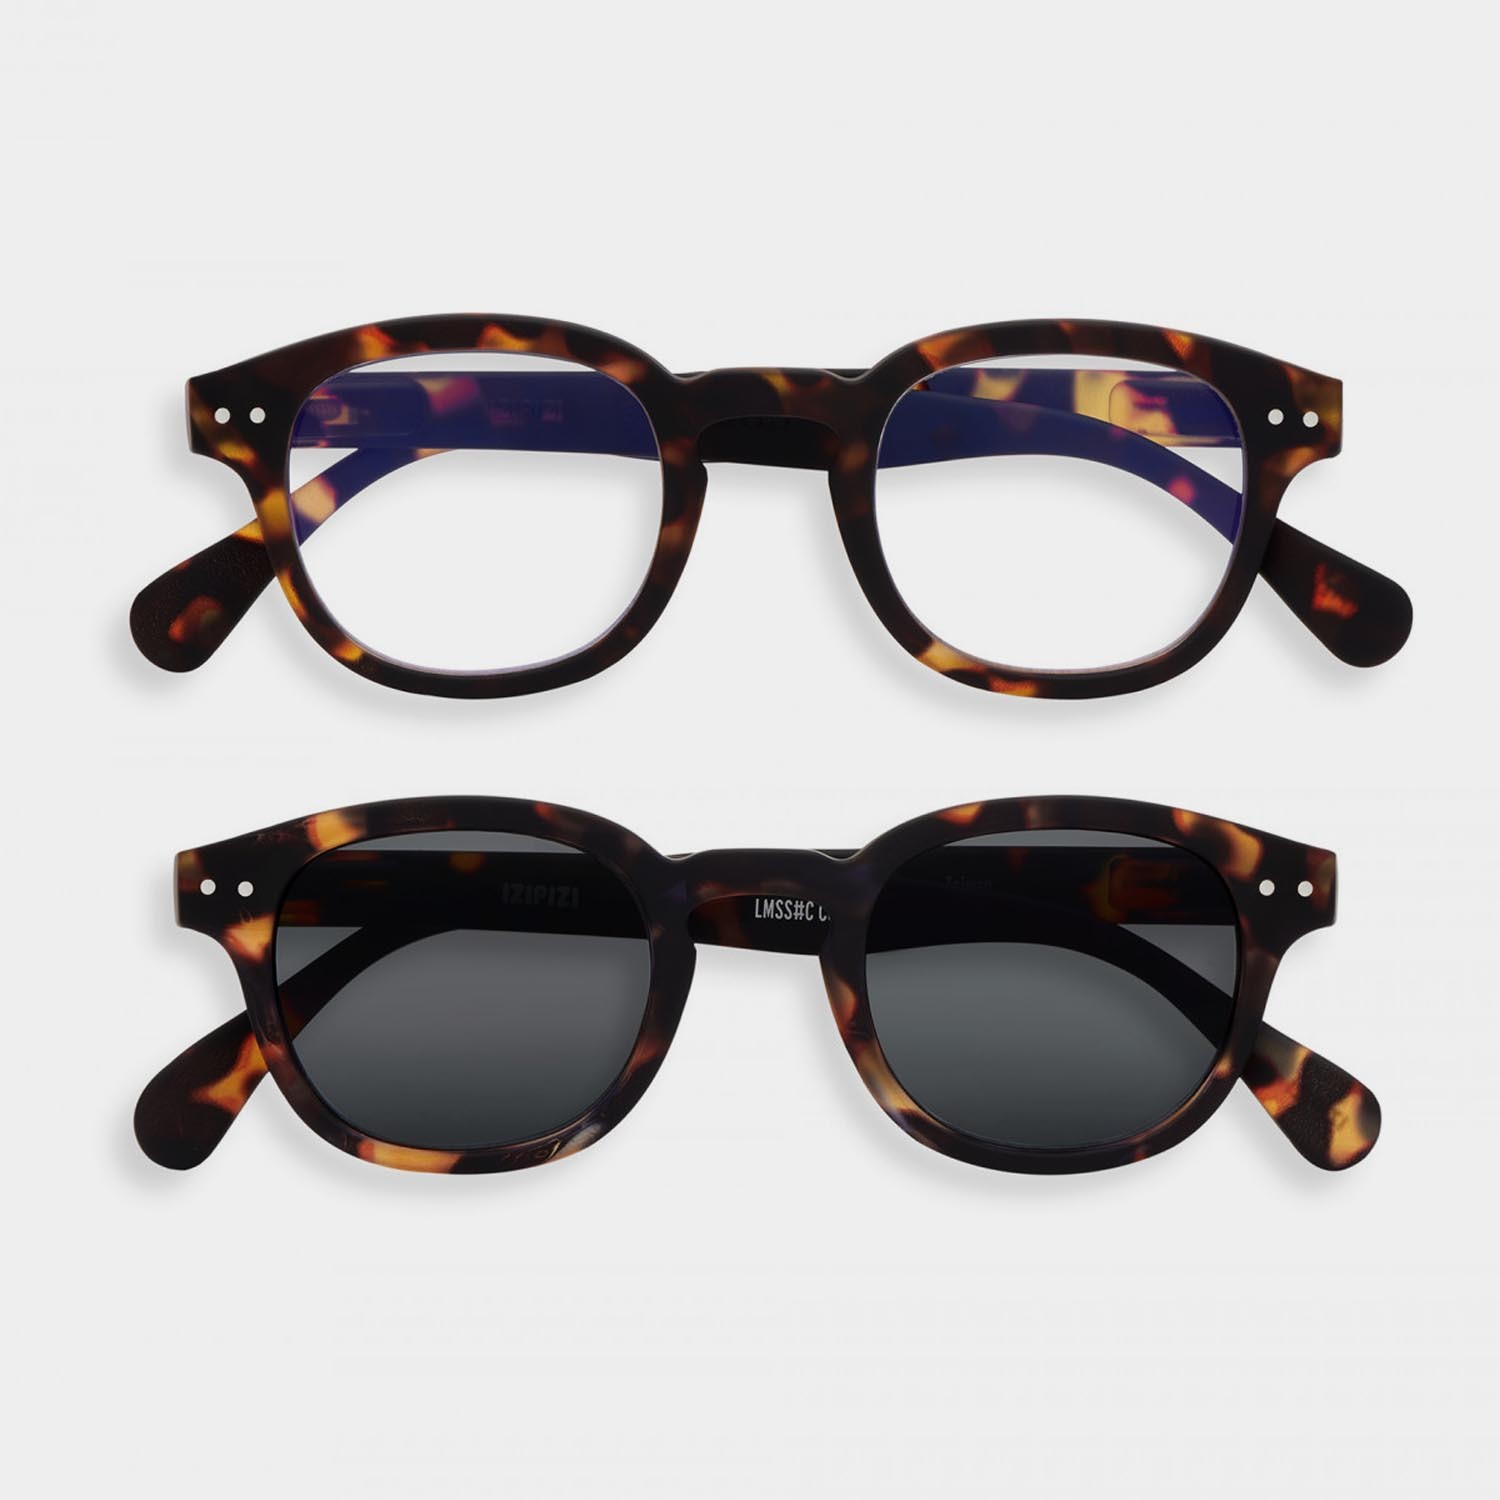 SCREEN and SUN Glasses Duo #C, Tortoise